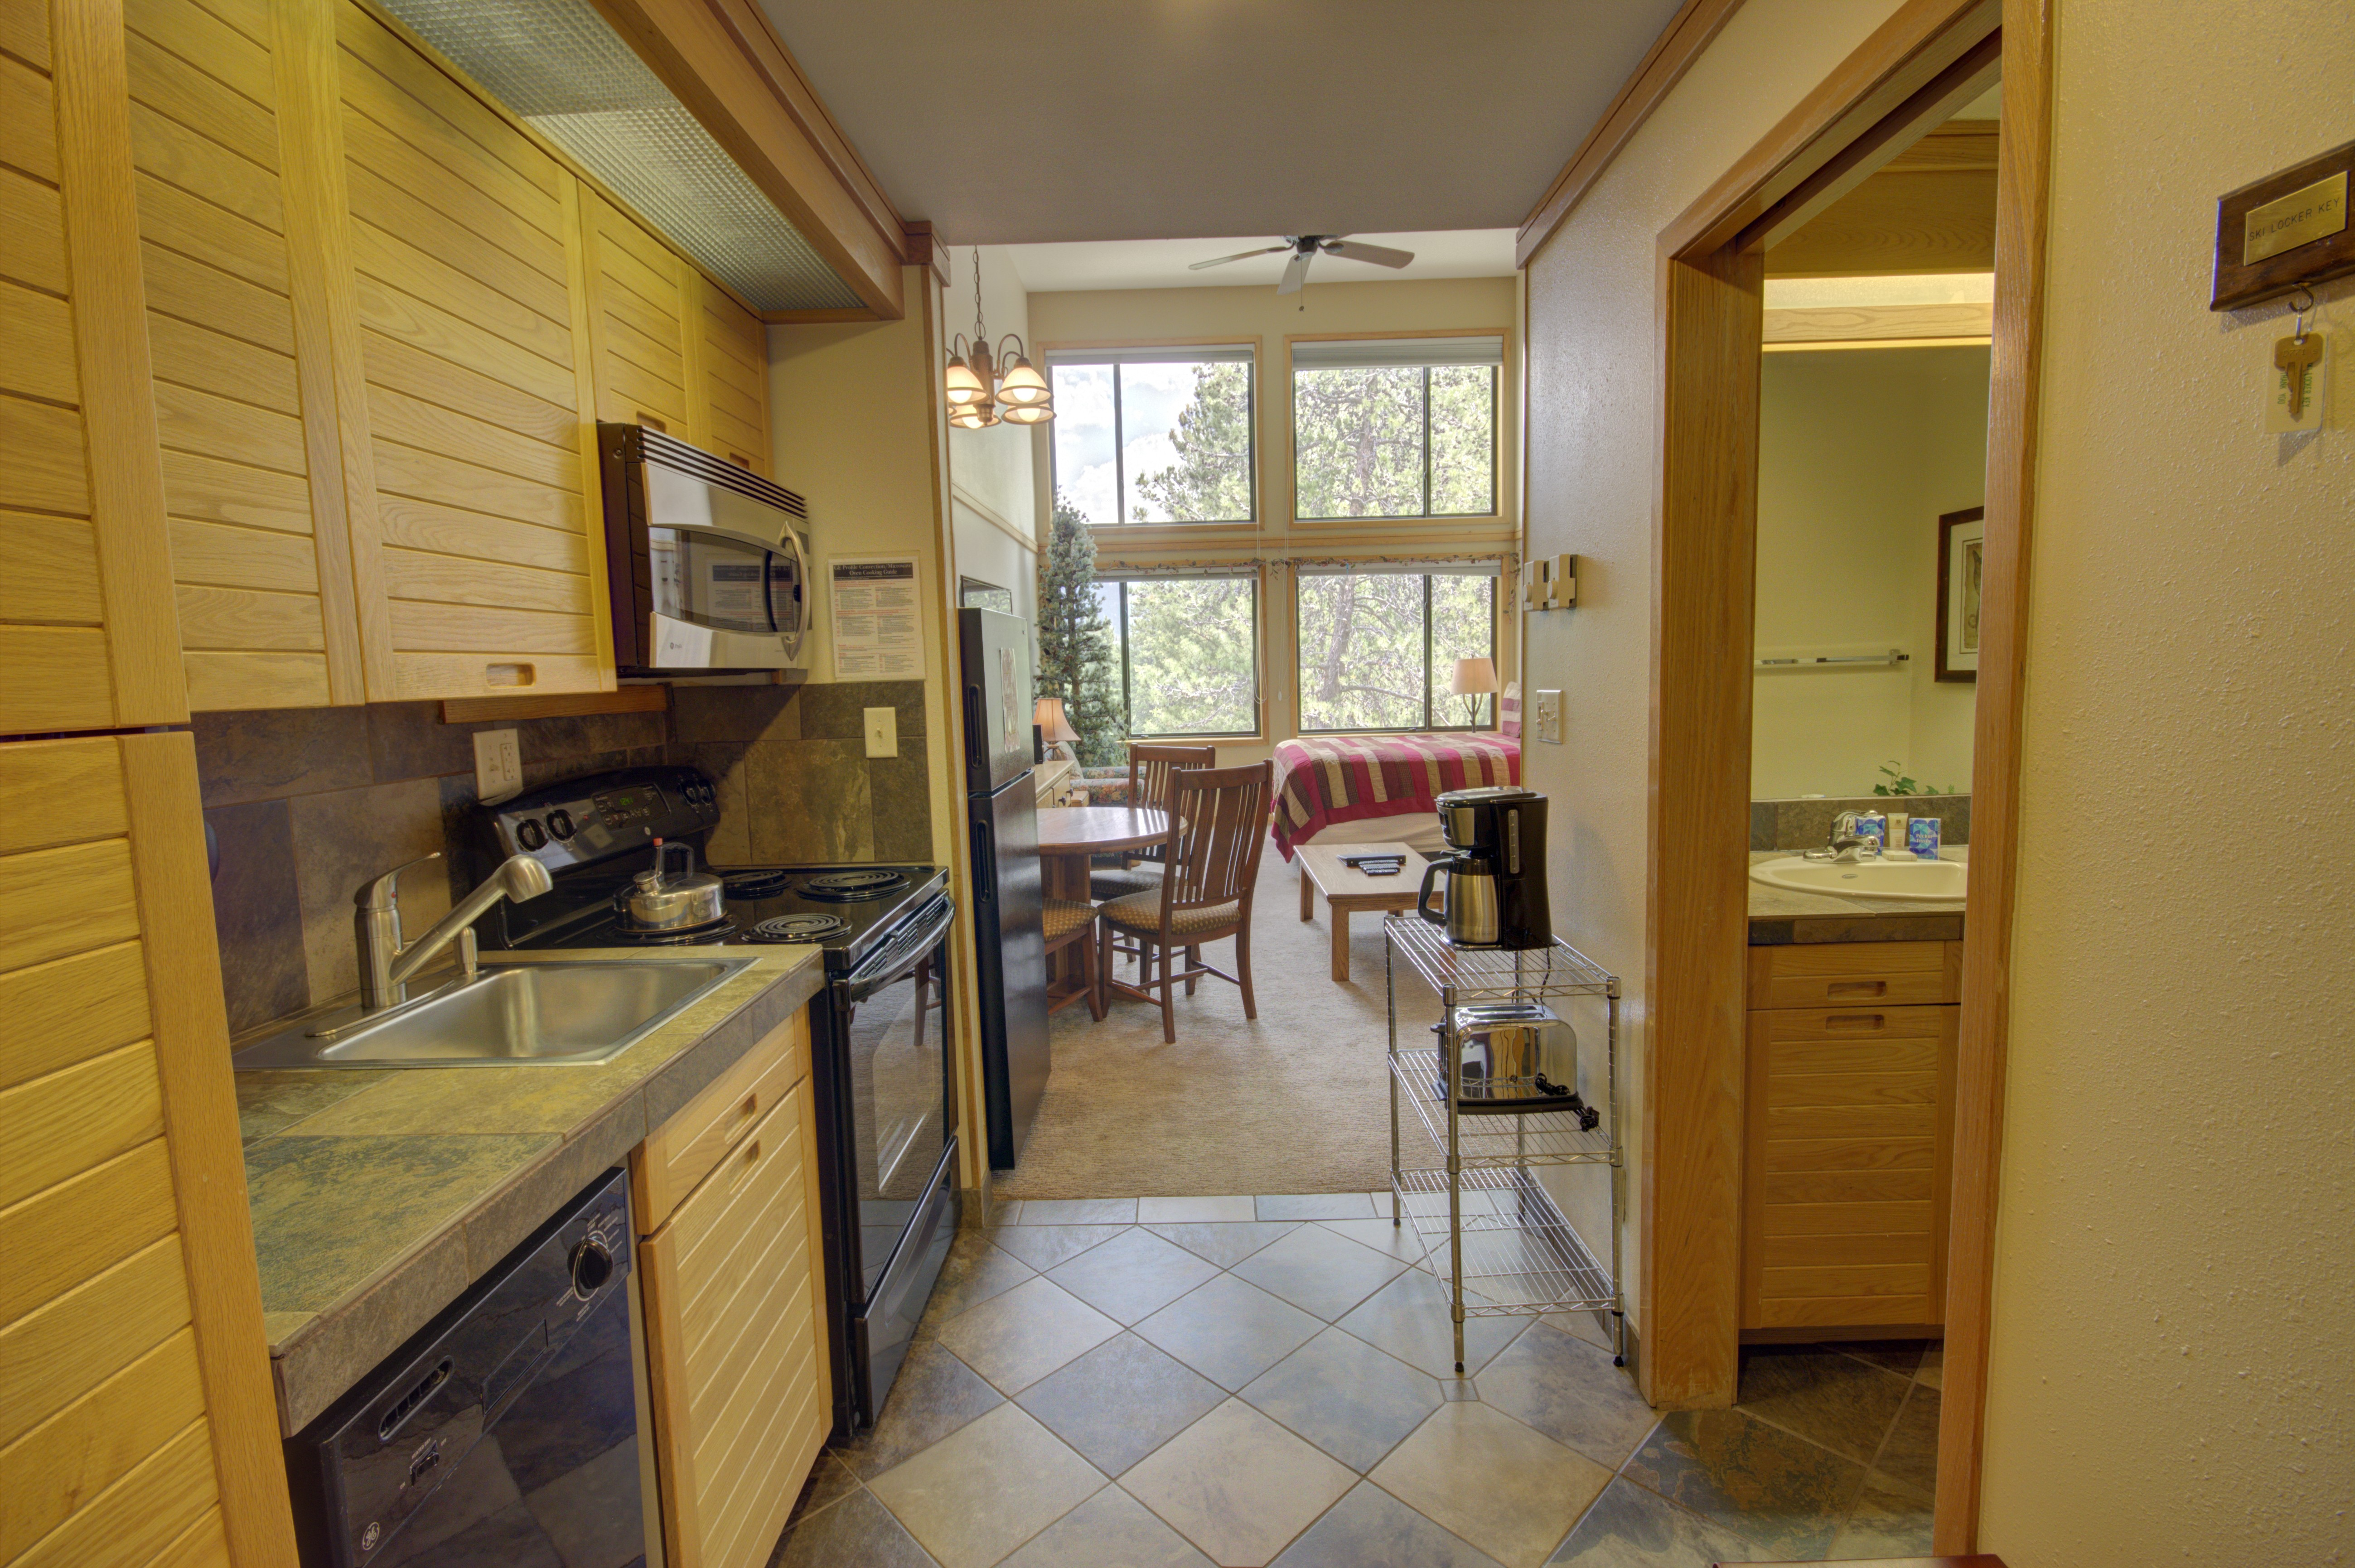 Kitchen area with coffee maker perfect for those early mornings